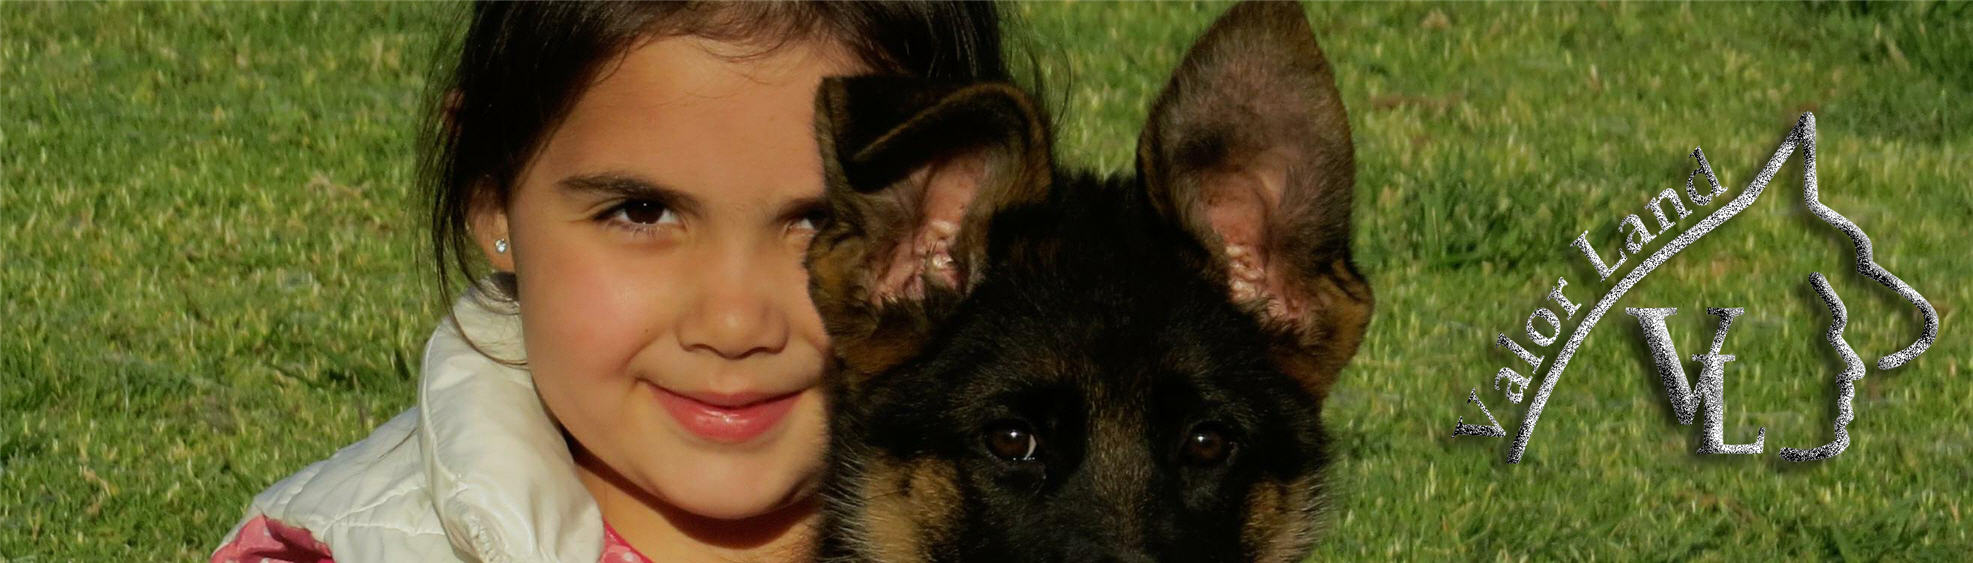 ValorLand German Shepherds